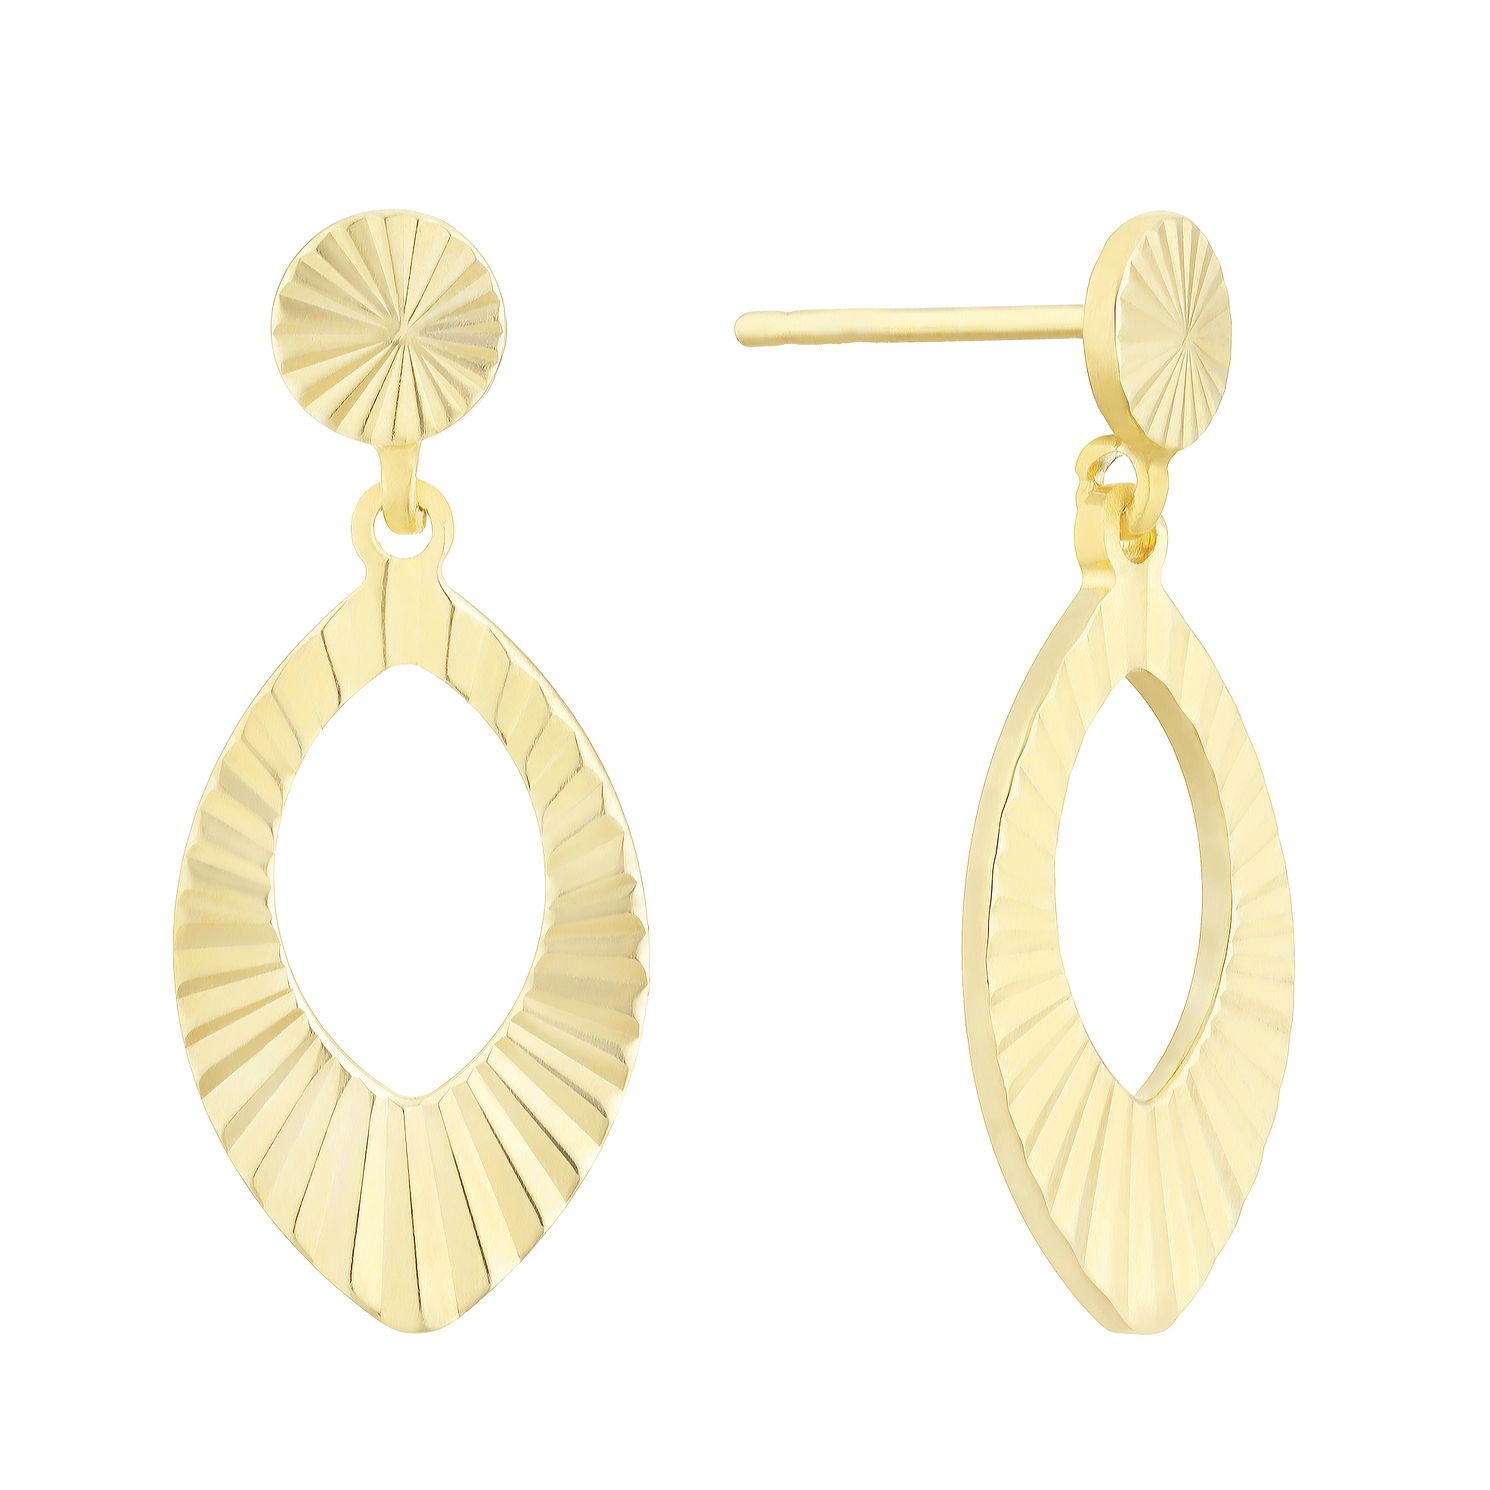 Together Silver & 9ct Bonded Gold Solar Core Oval Earrings - Product number 3152960